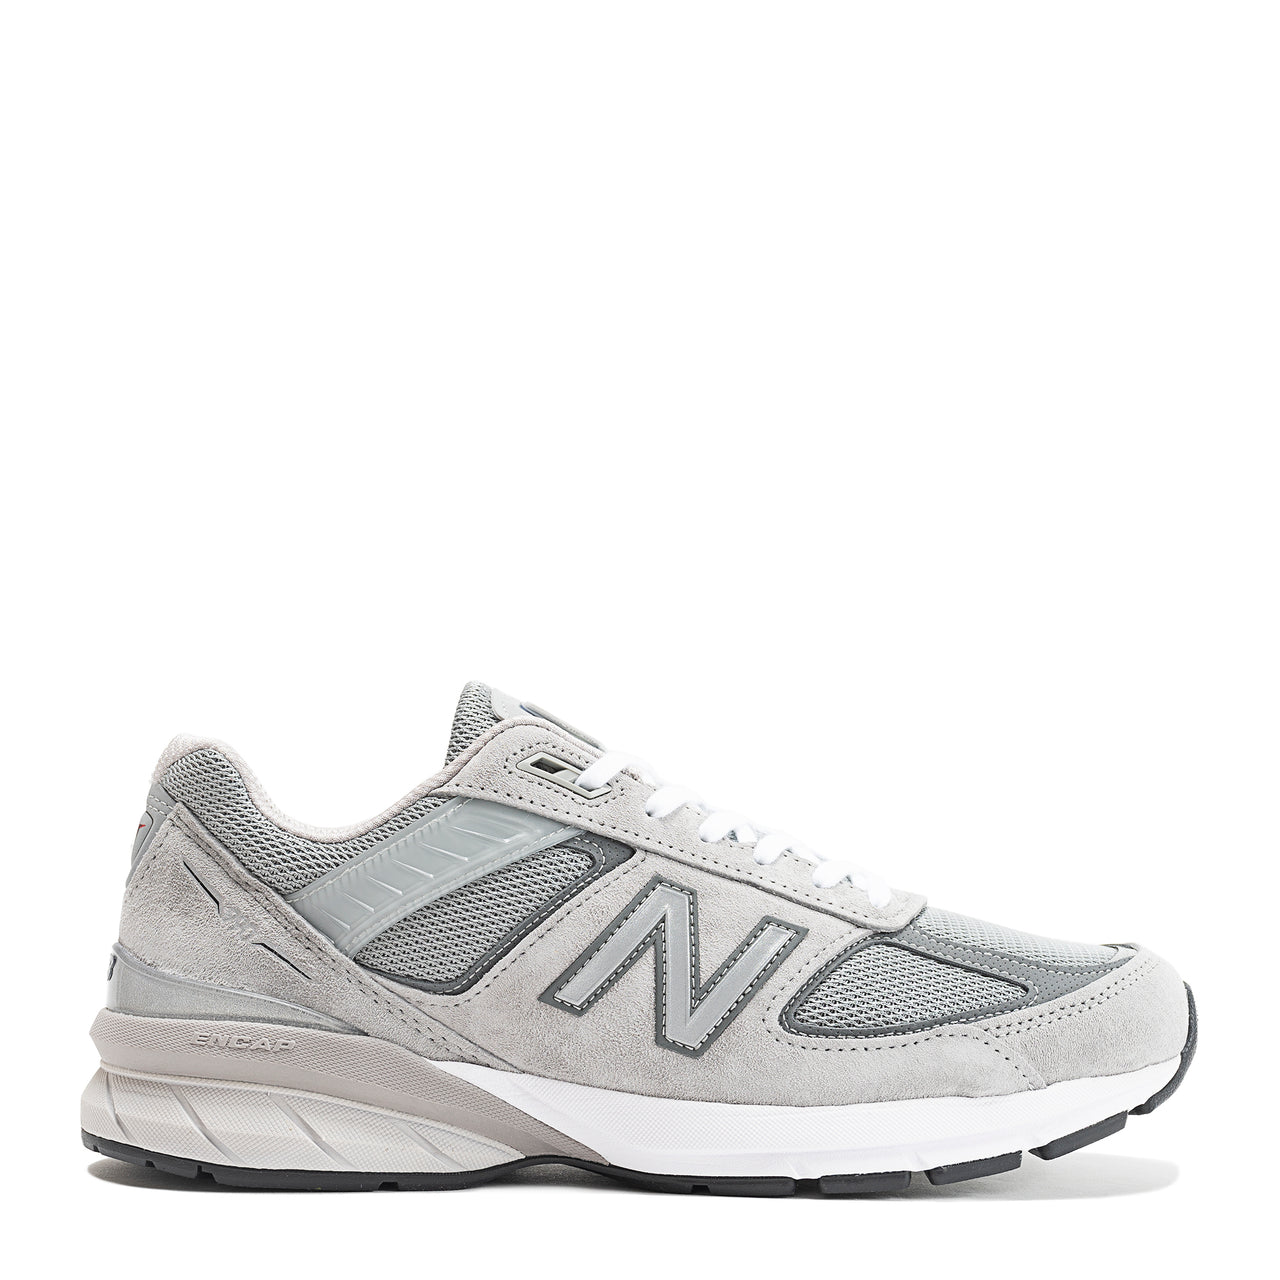 New Balance - 990 V5 MADE IN USA - Footwear - Saint Alfred